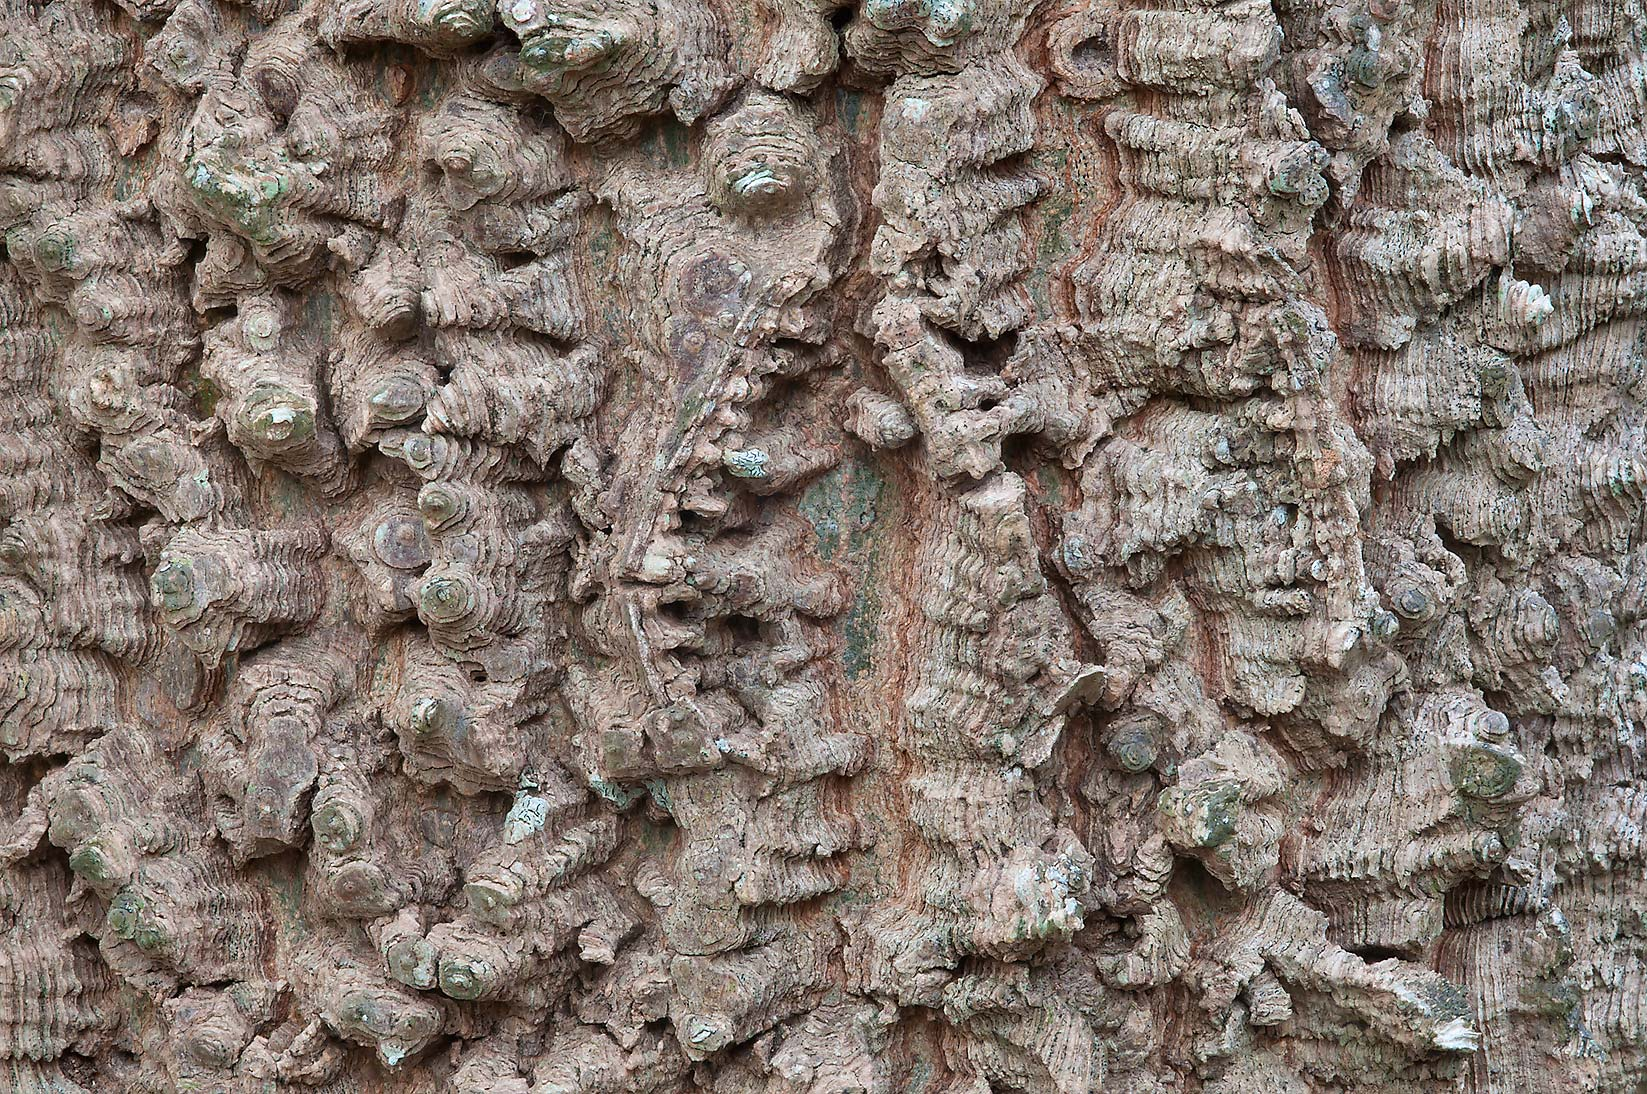 Corky bark of hackberry (Celtis occidentalis) in...State Historic Site. Washington, Texas